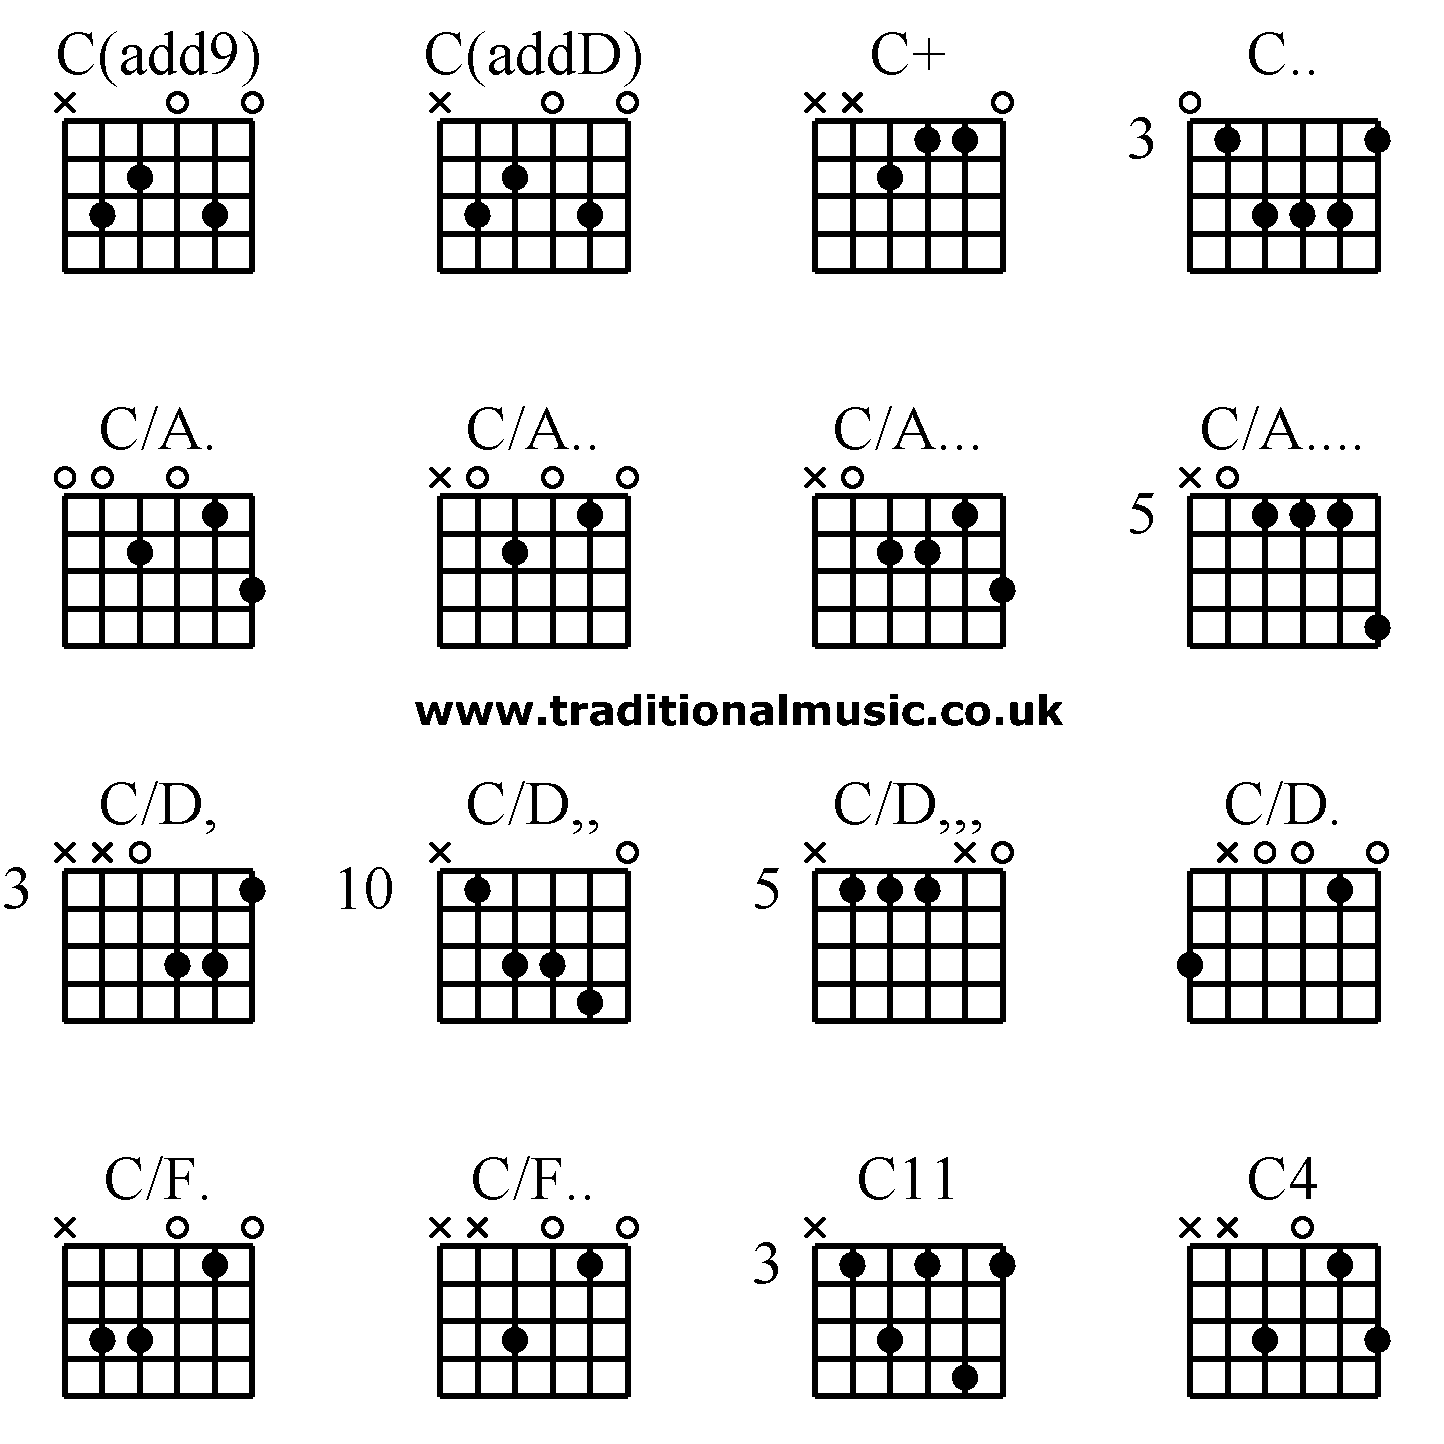 Advanced Guitar Chords C Add9 C Addd C C C A C A